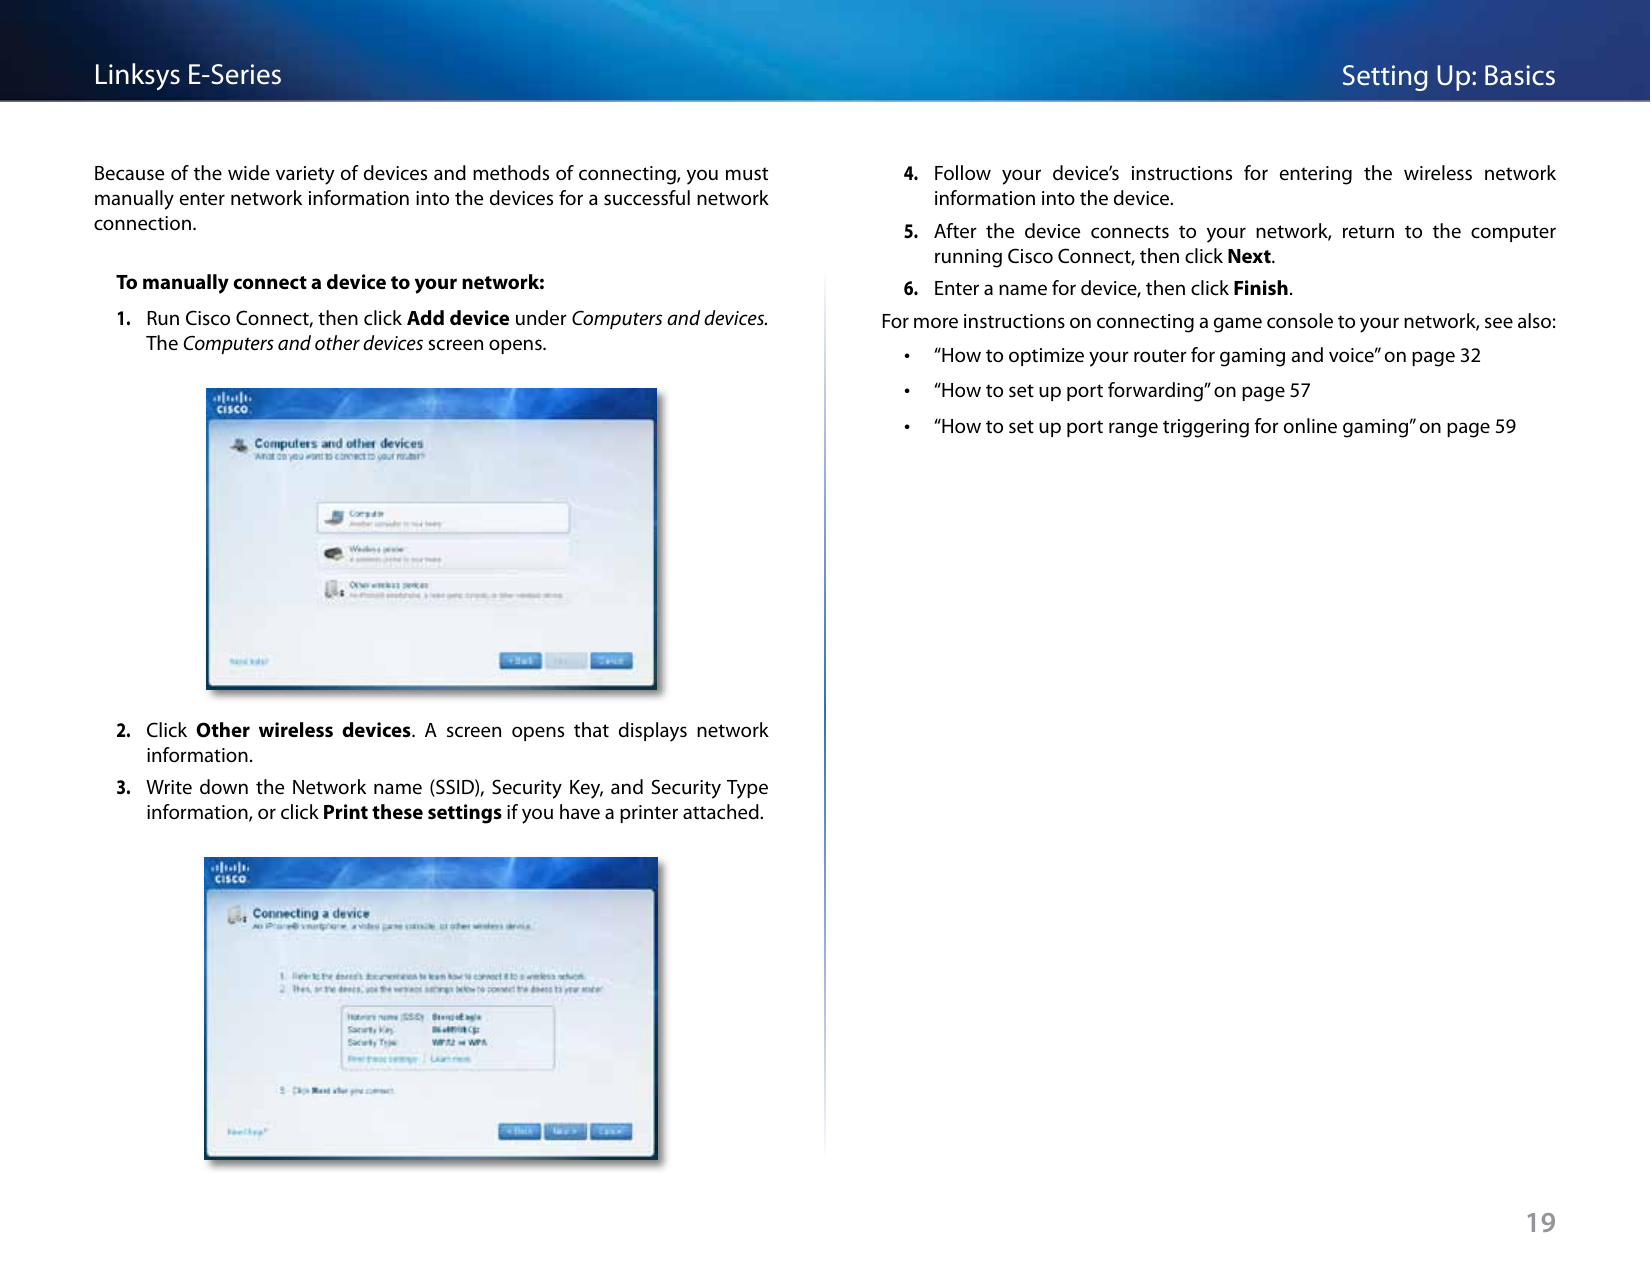 Cisco Linksys E900 Users Manual E Series Routers User Guide